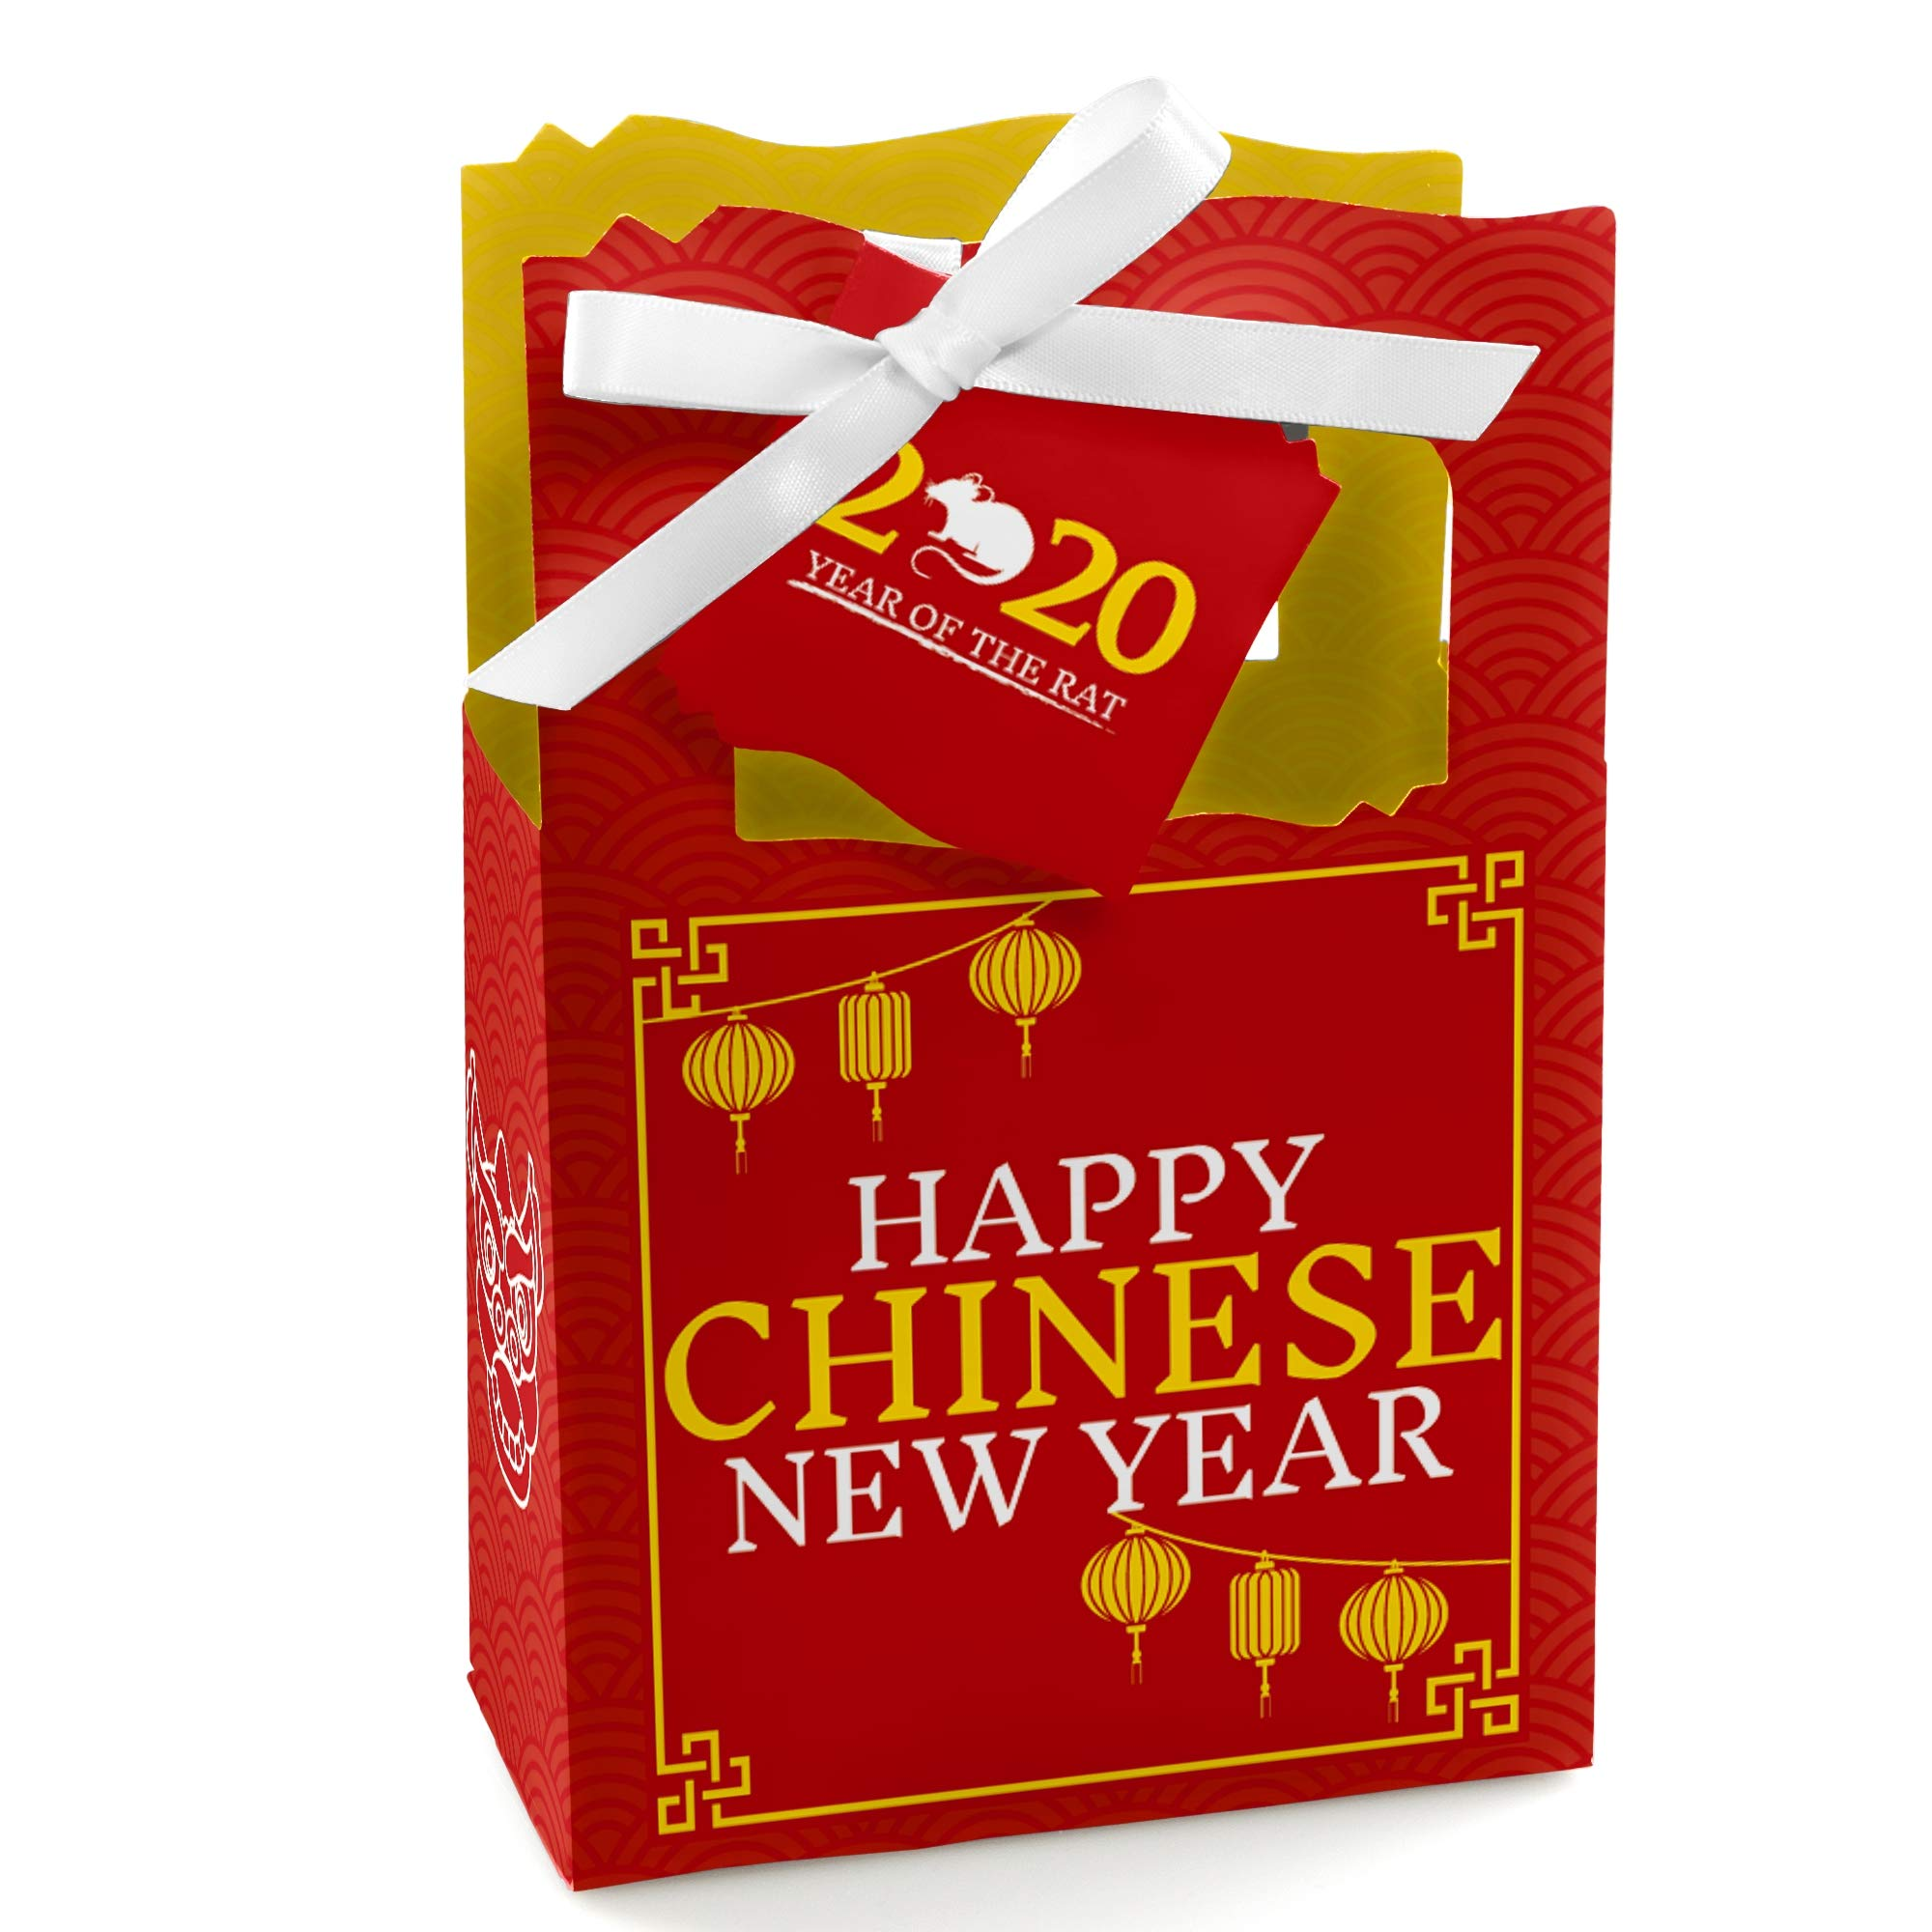 Big Dot of Happiness Chinese New Year - 2020 Year of the Rat Party Gift Boxes - 12 Count